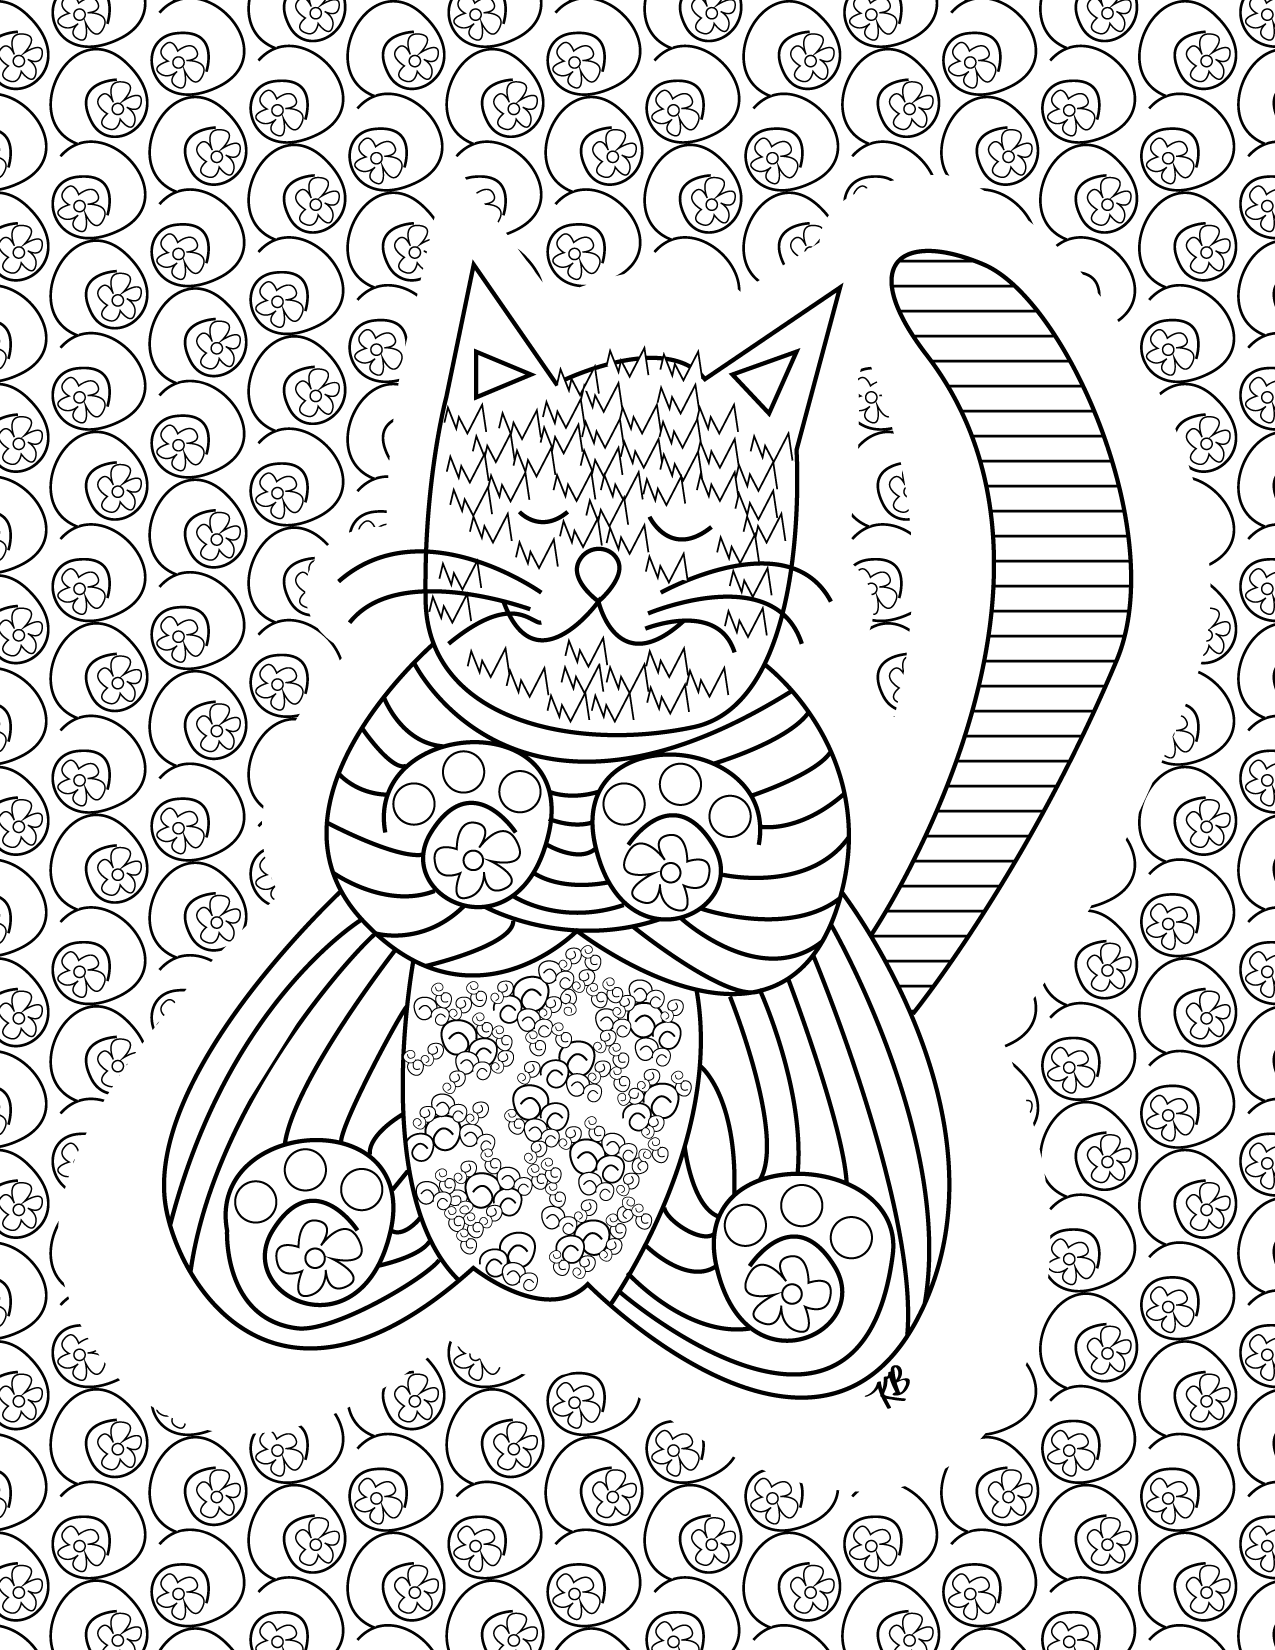 FREE Kitty Coloring Page! | kristinbell.org